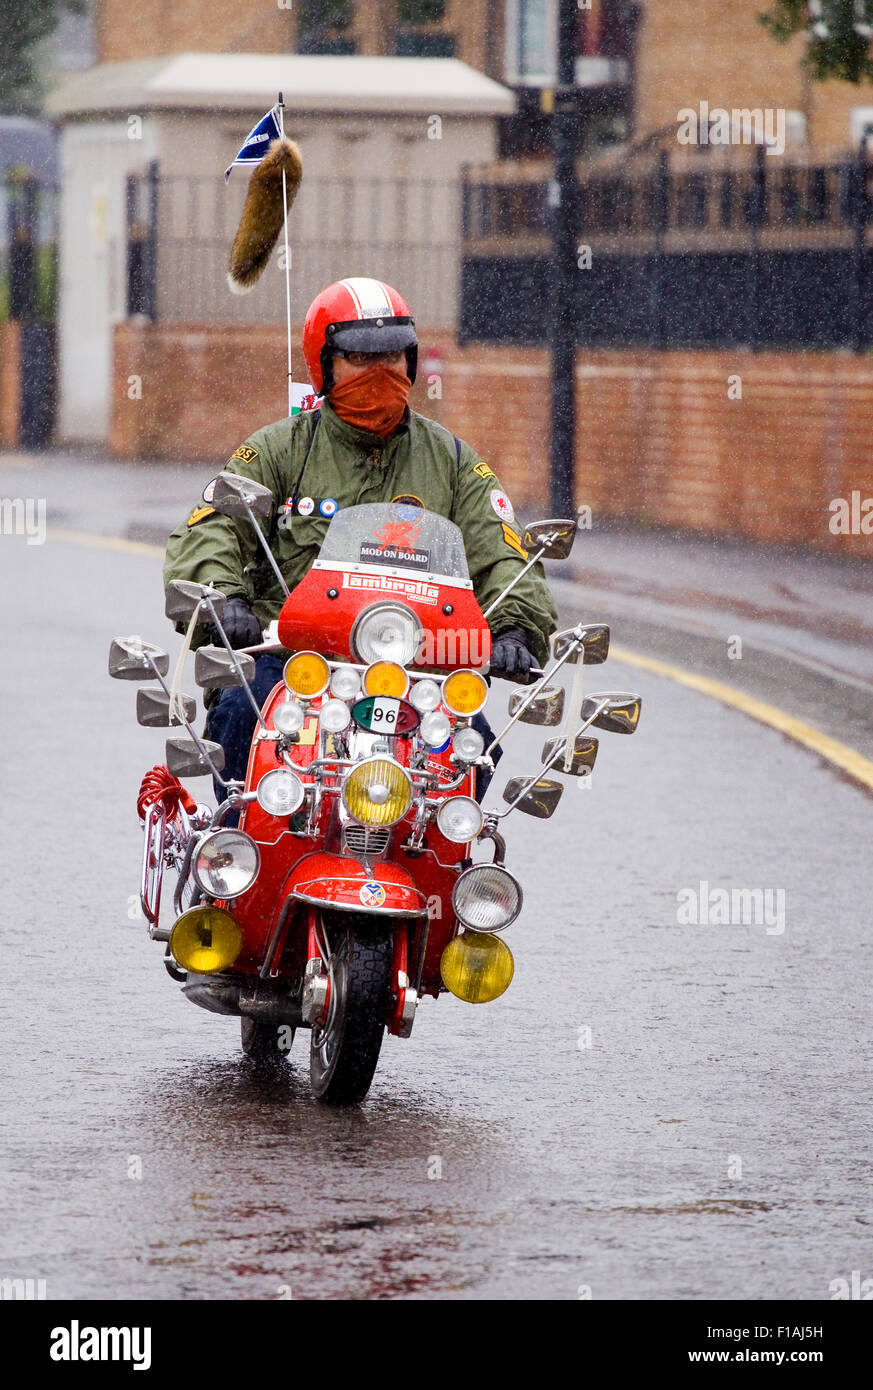 A mod riding a scooter with lots of mirrors and a fox tail attached to the aerial in a rain storm during a scooter - Stock Image